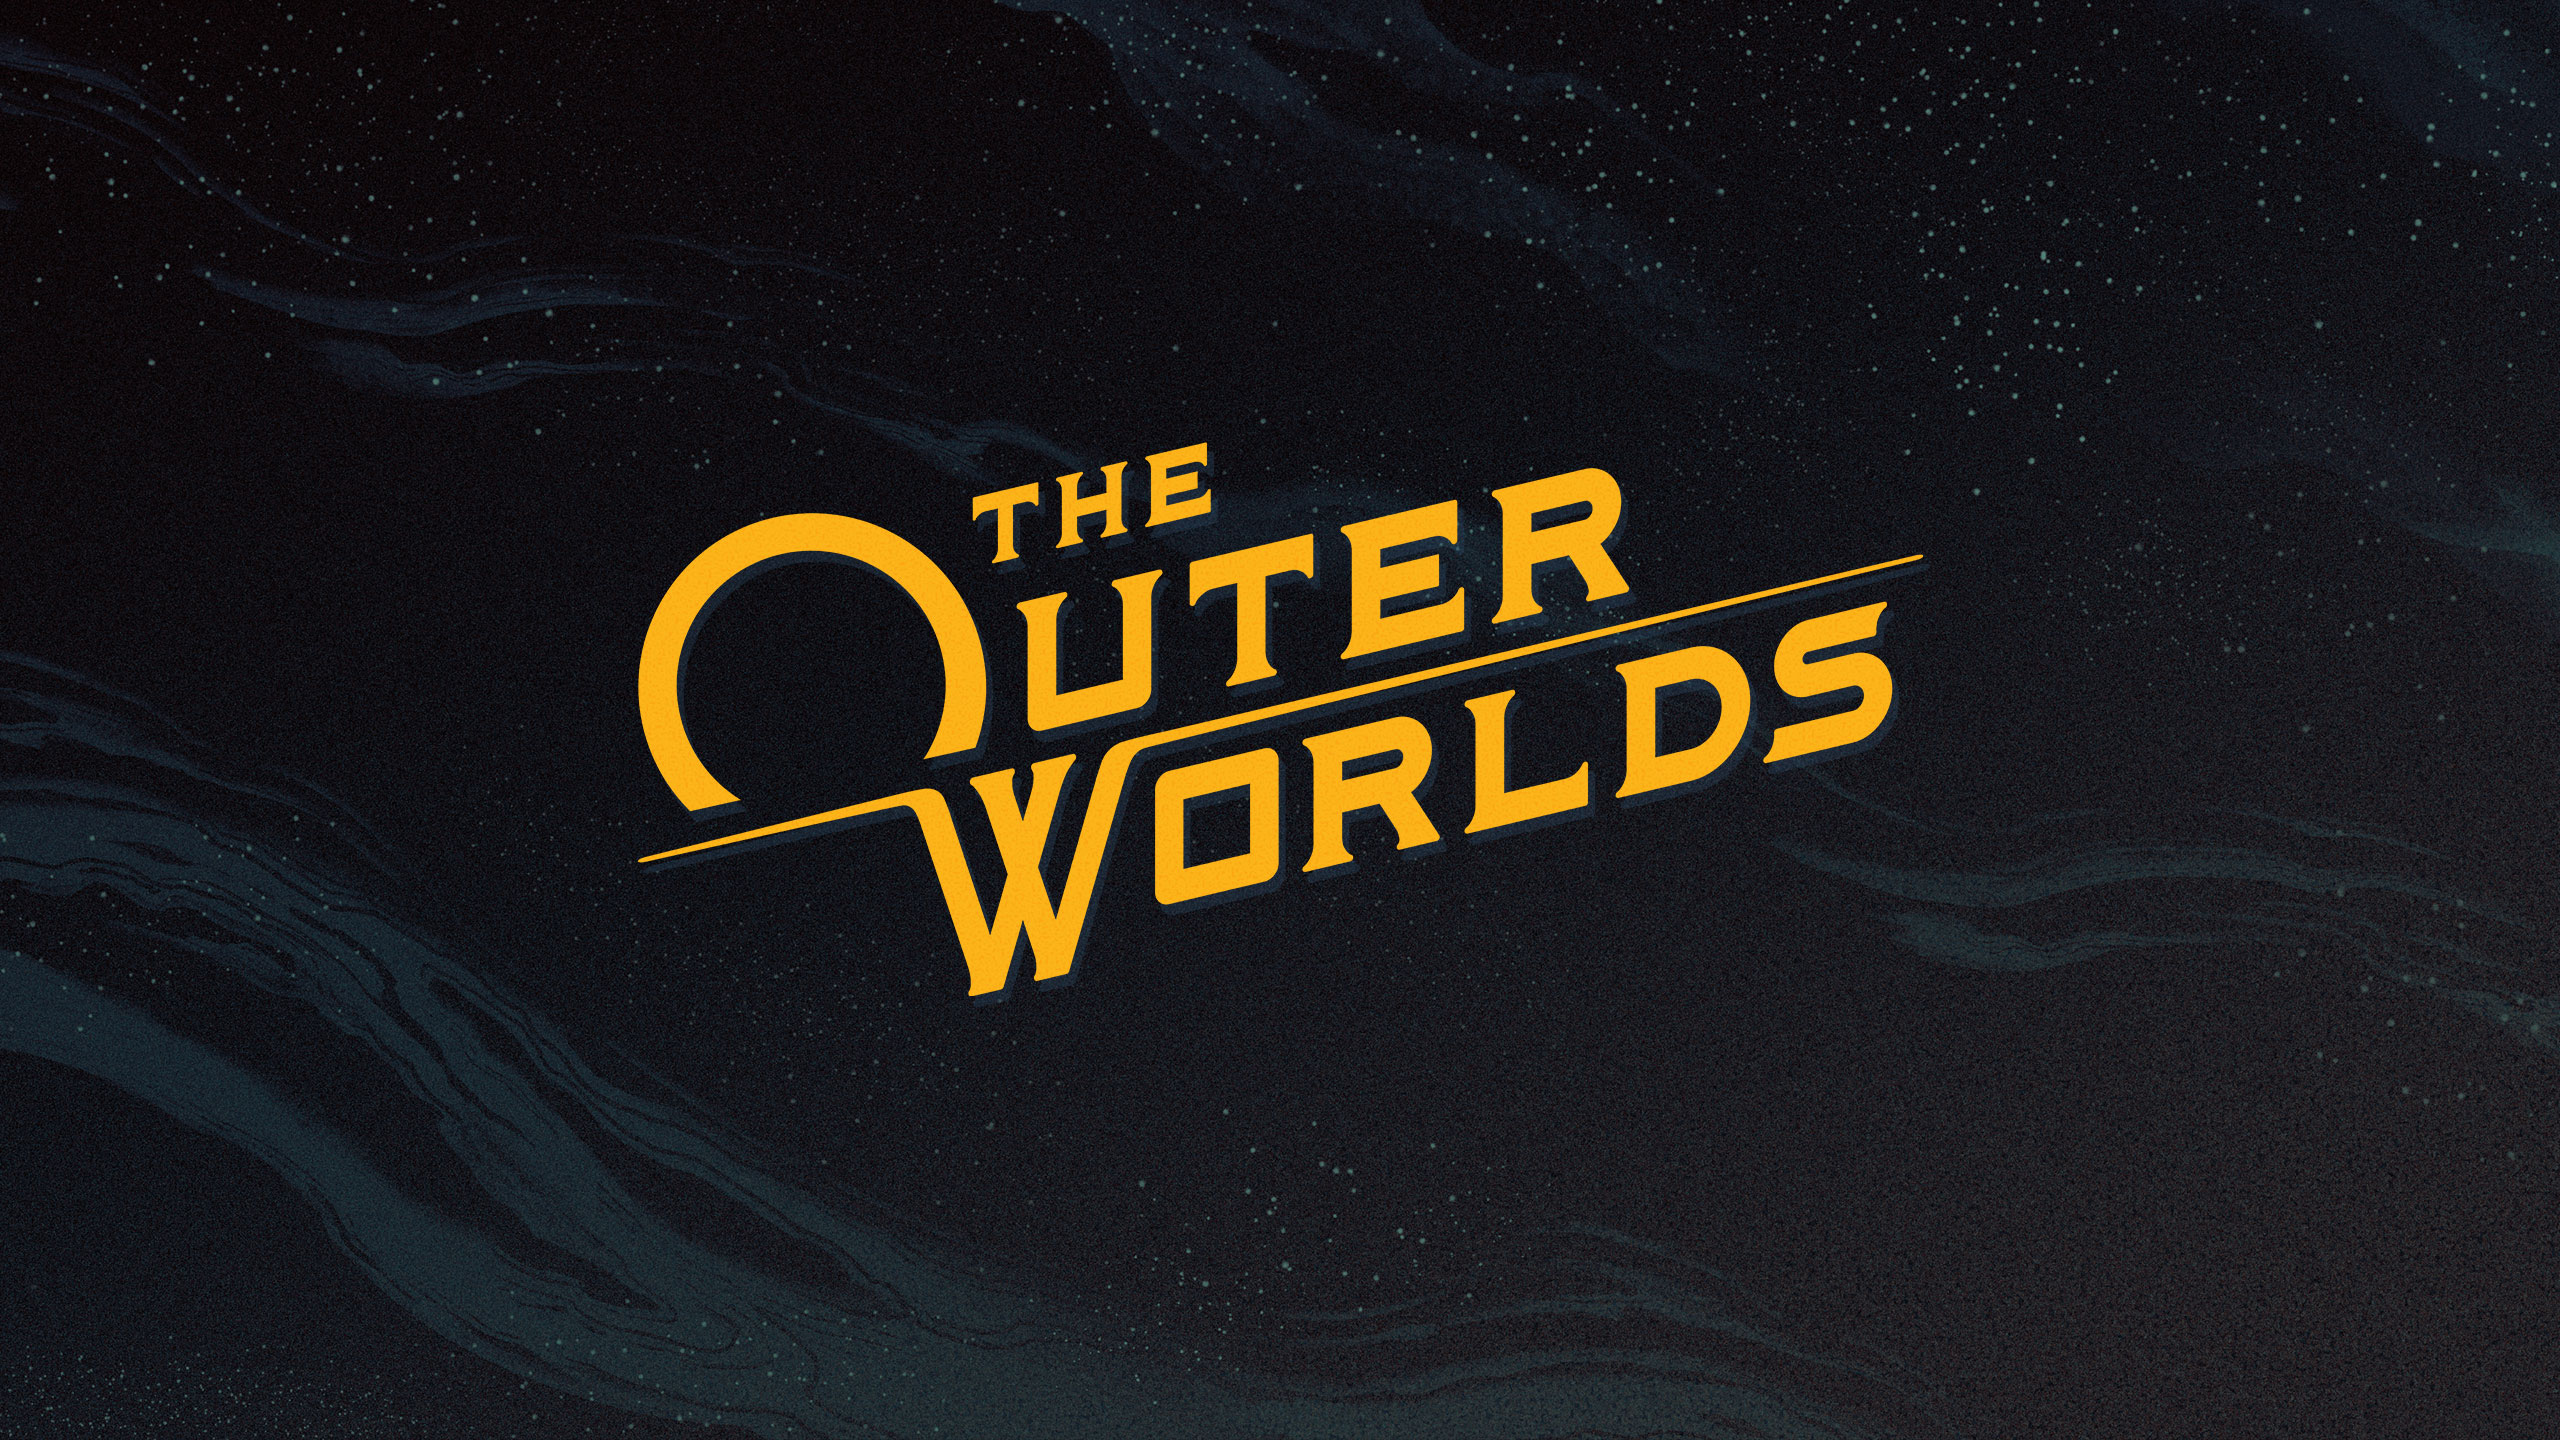 The outer worlds original soundtrack downloads